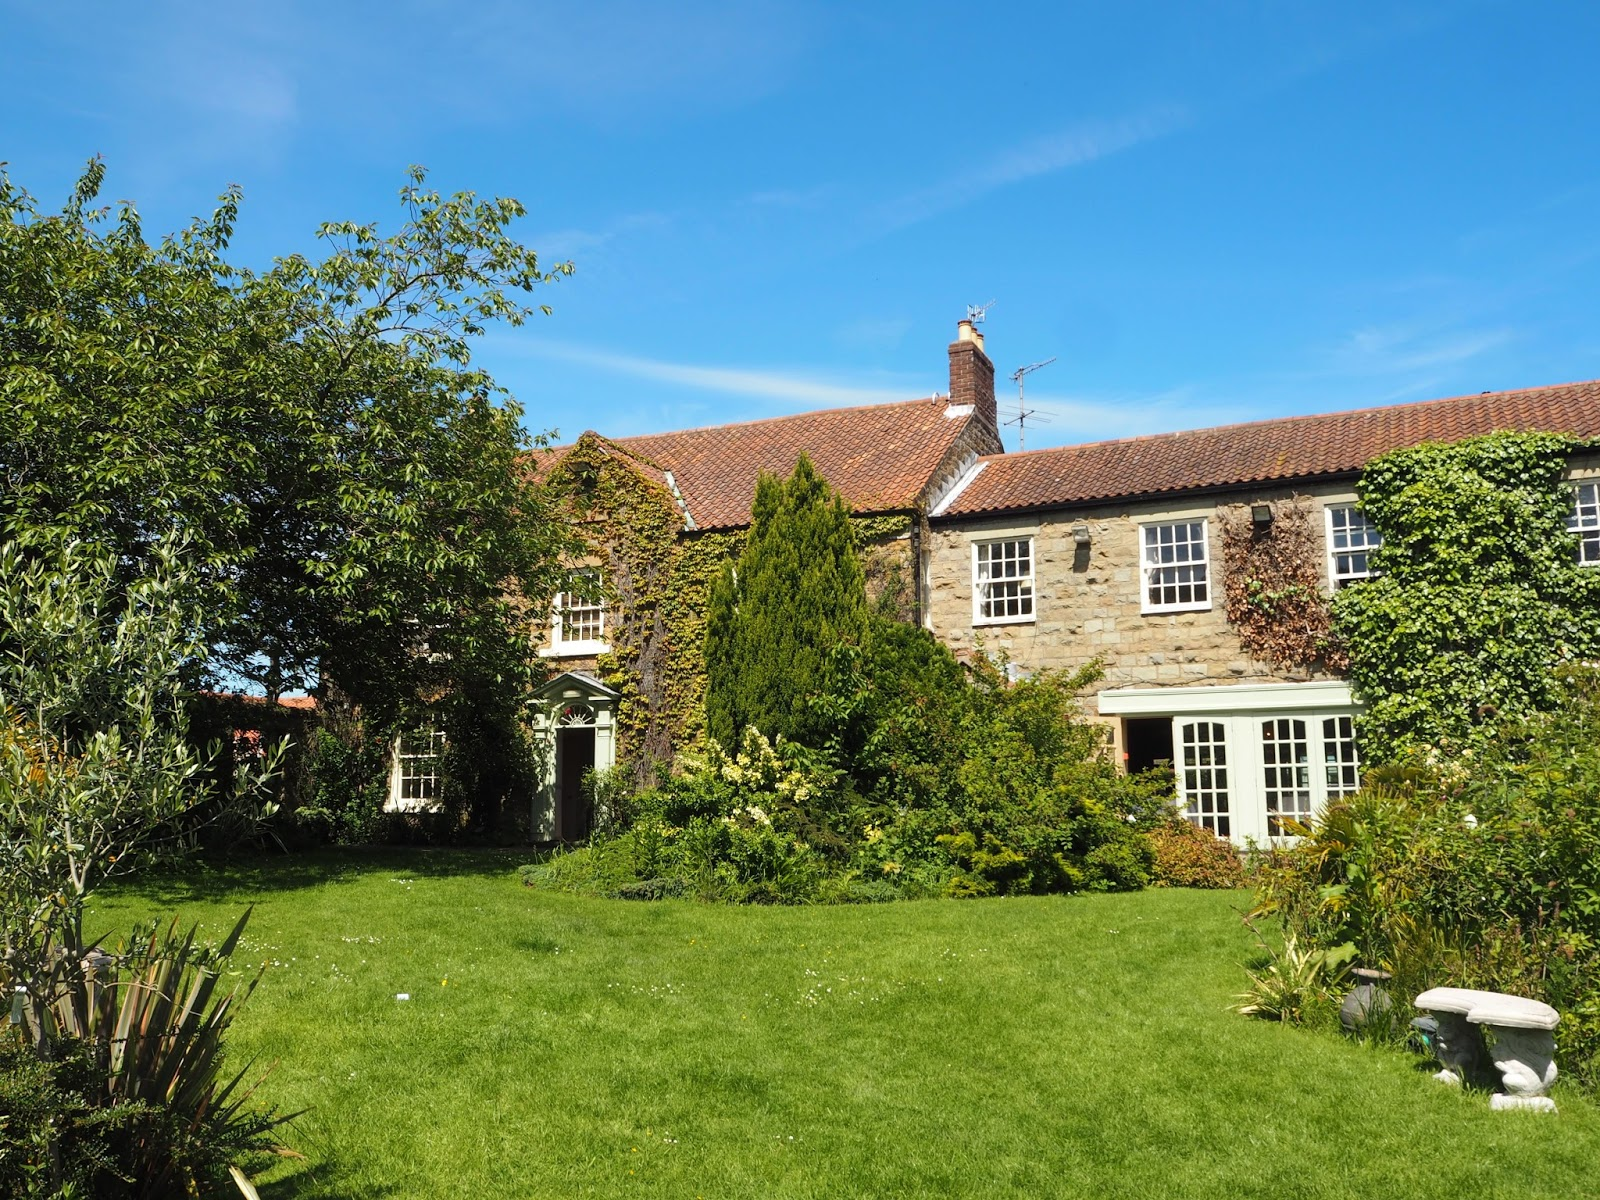 Ox Pasture Hall Country Hotel, Scarborough, Yorkshire, romantic hotel near beach in Scarborough